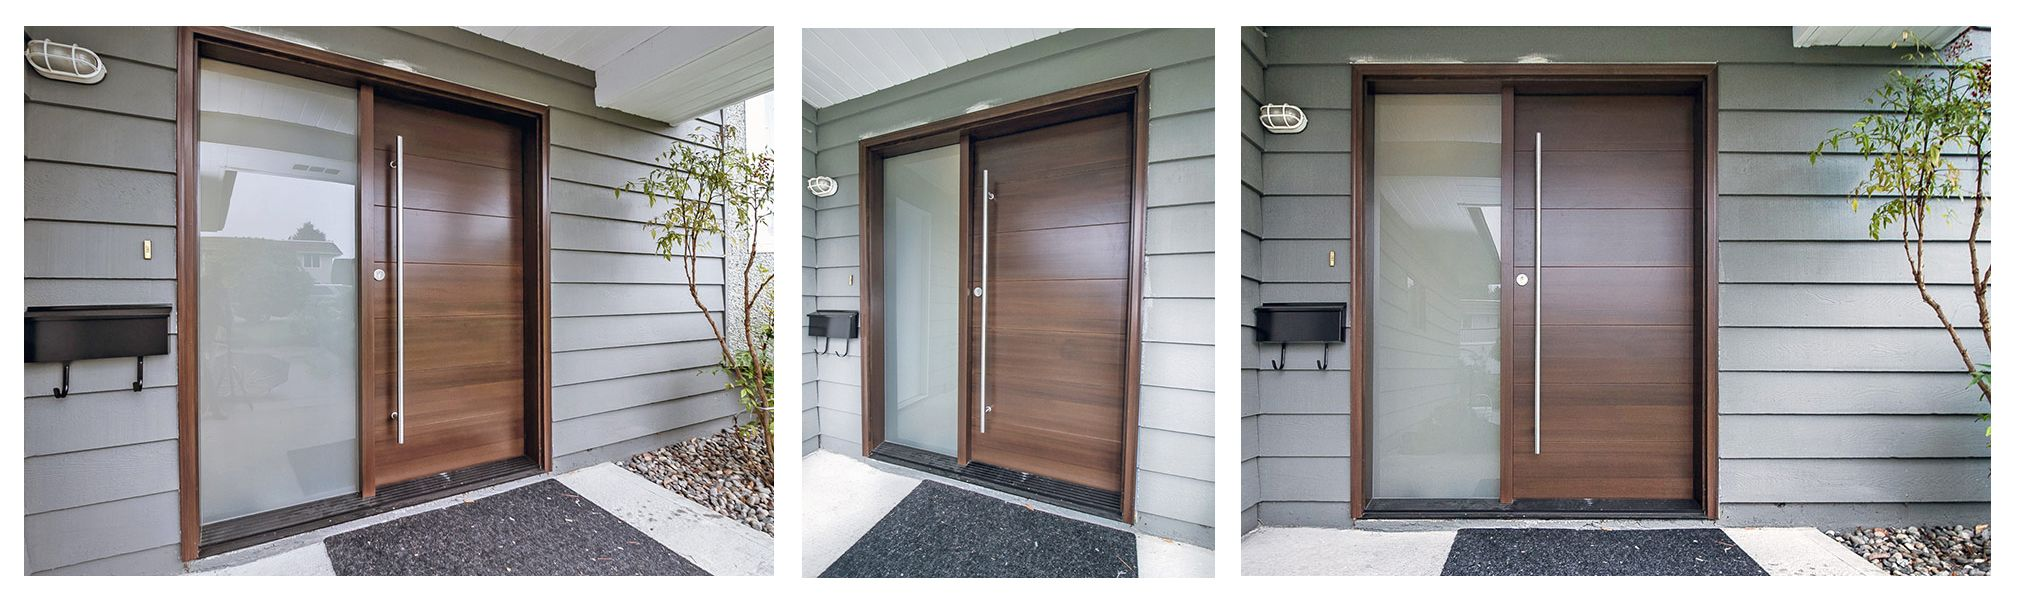 door re remodeling exterior contractor page doors installation talk